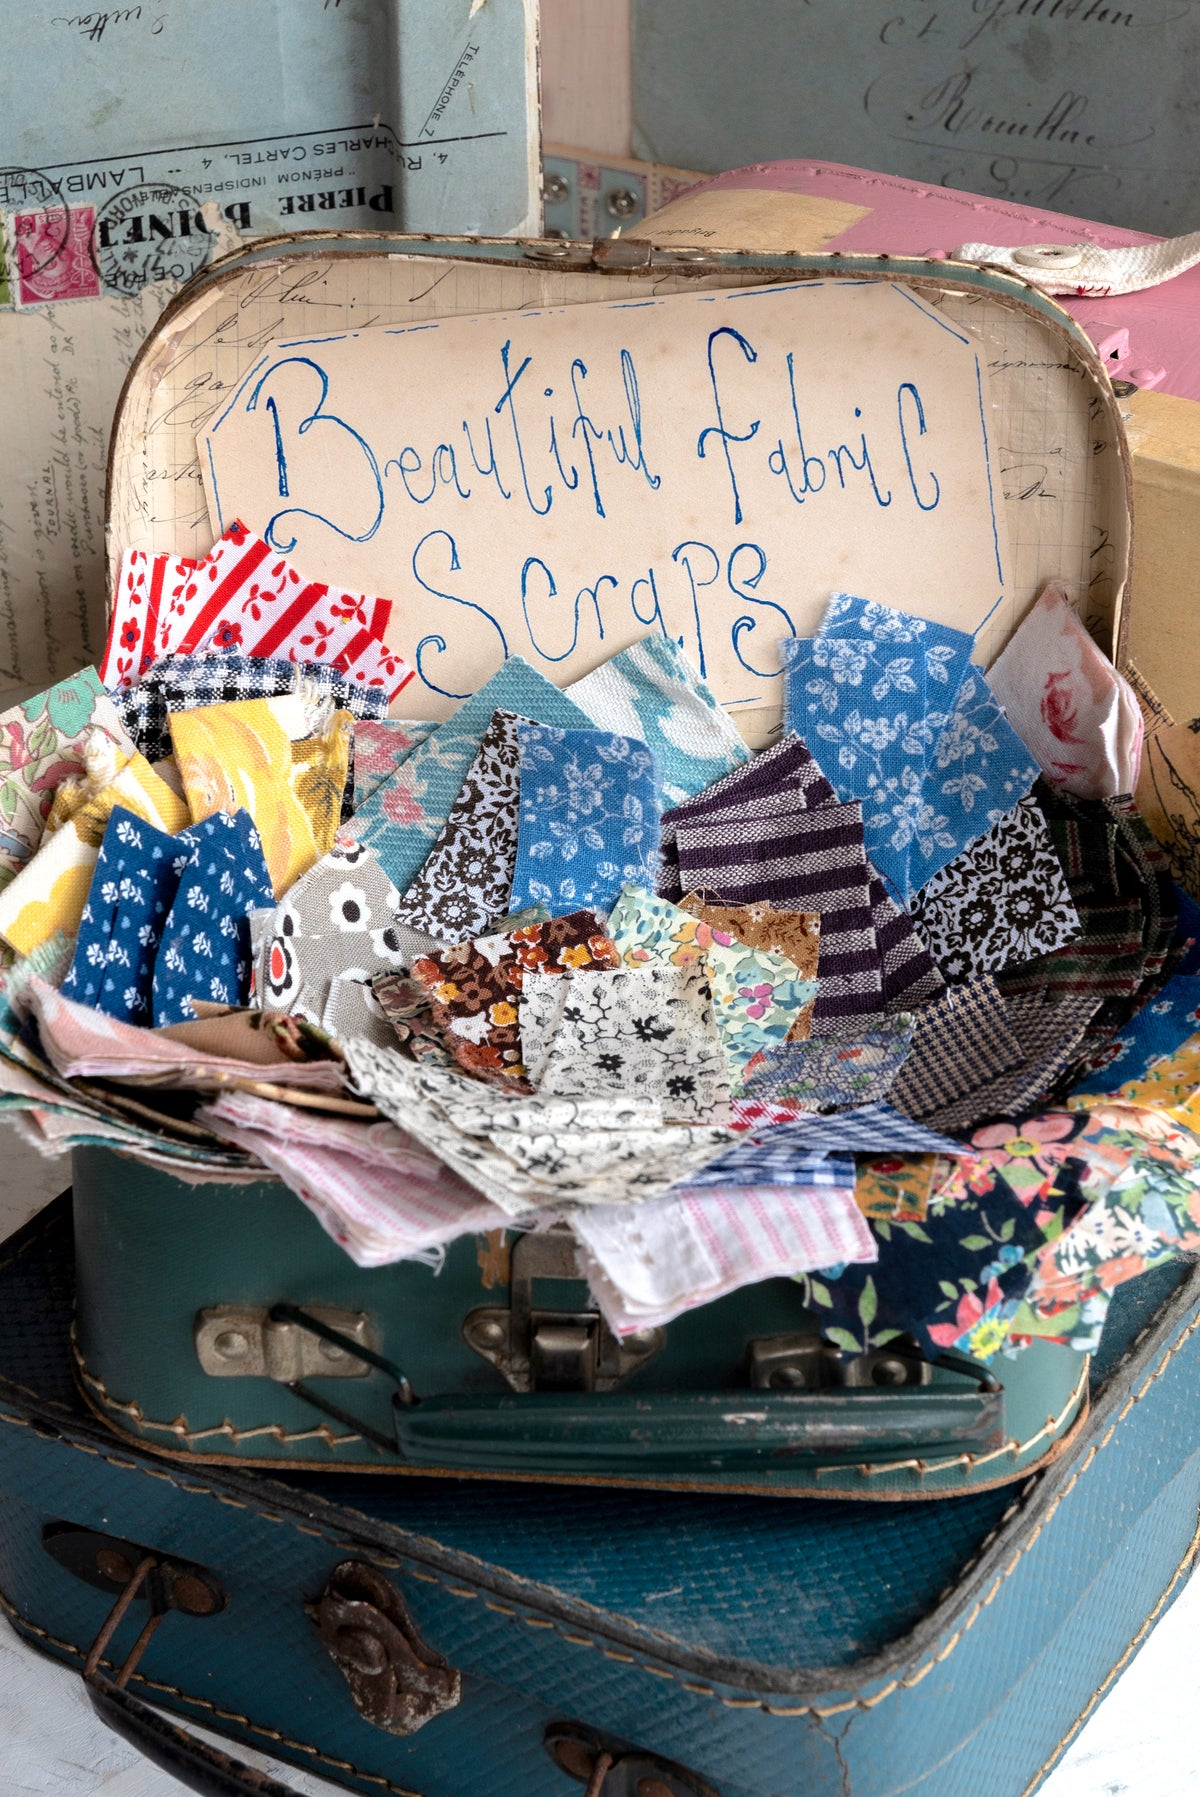 Image of  Beautiful fabric scraps